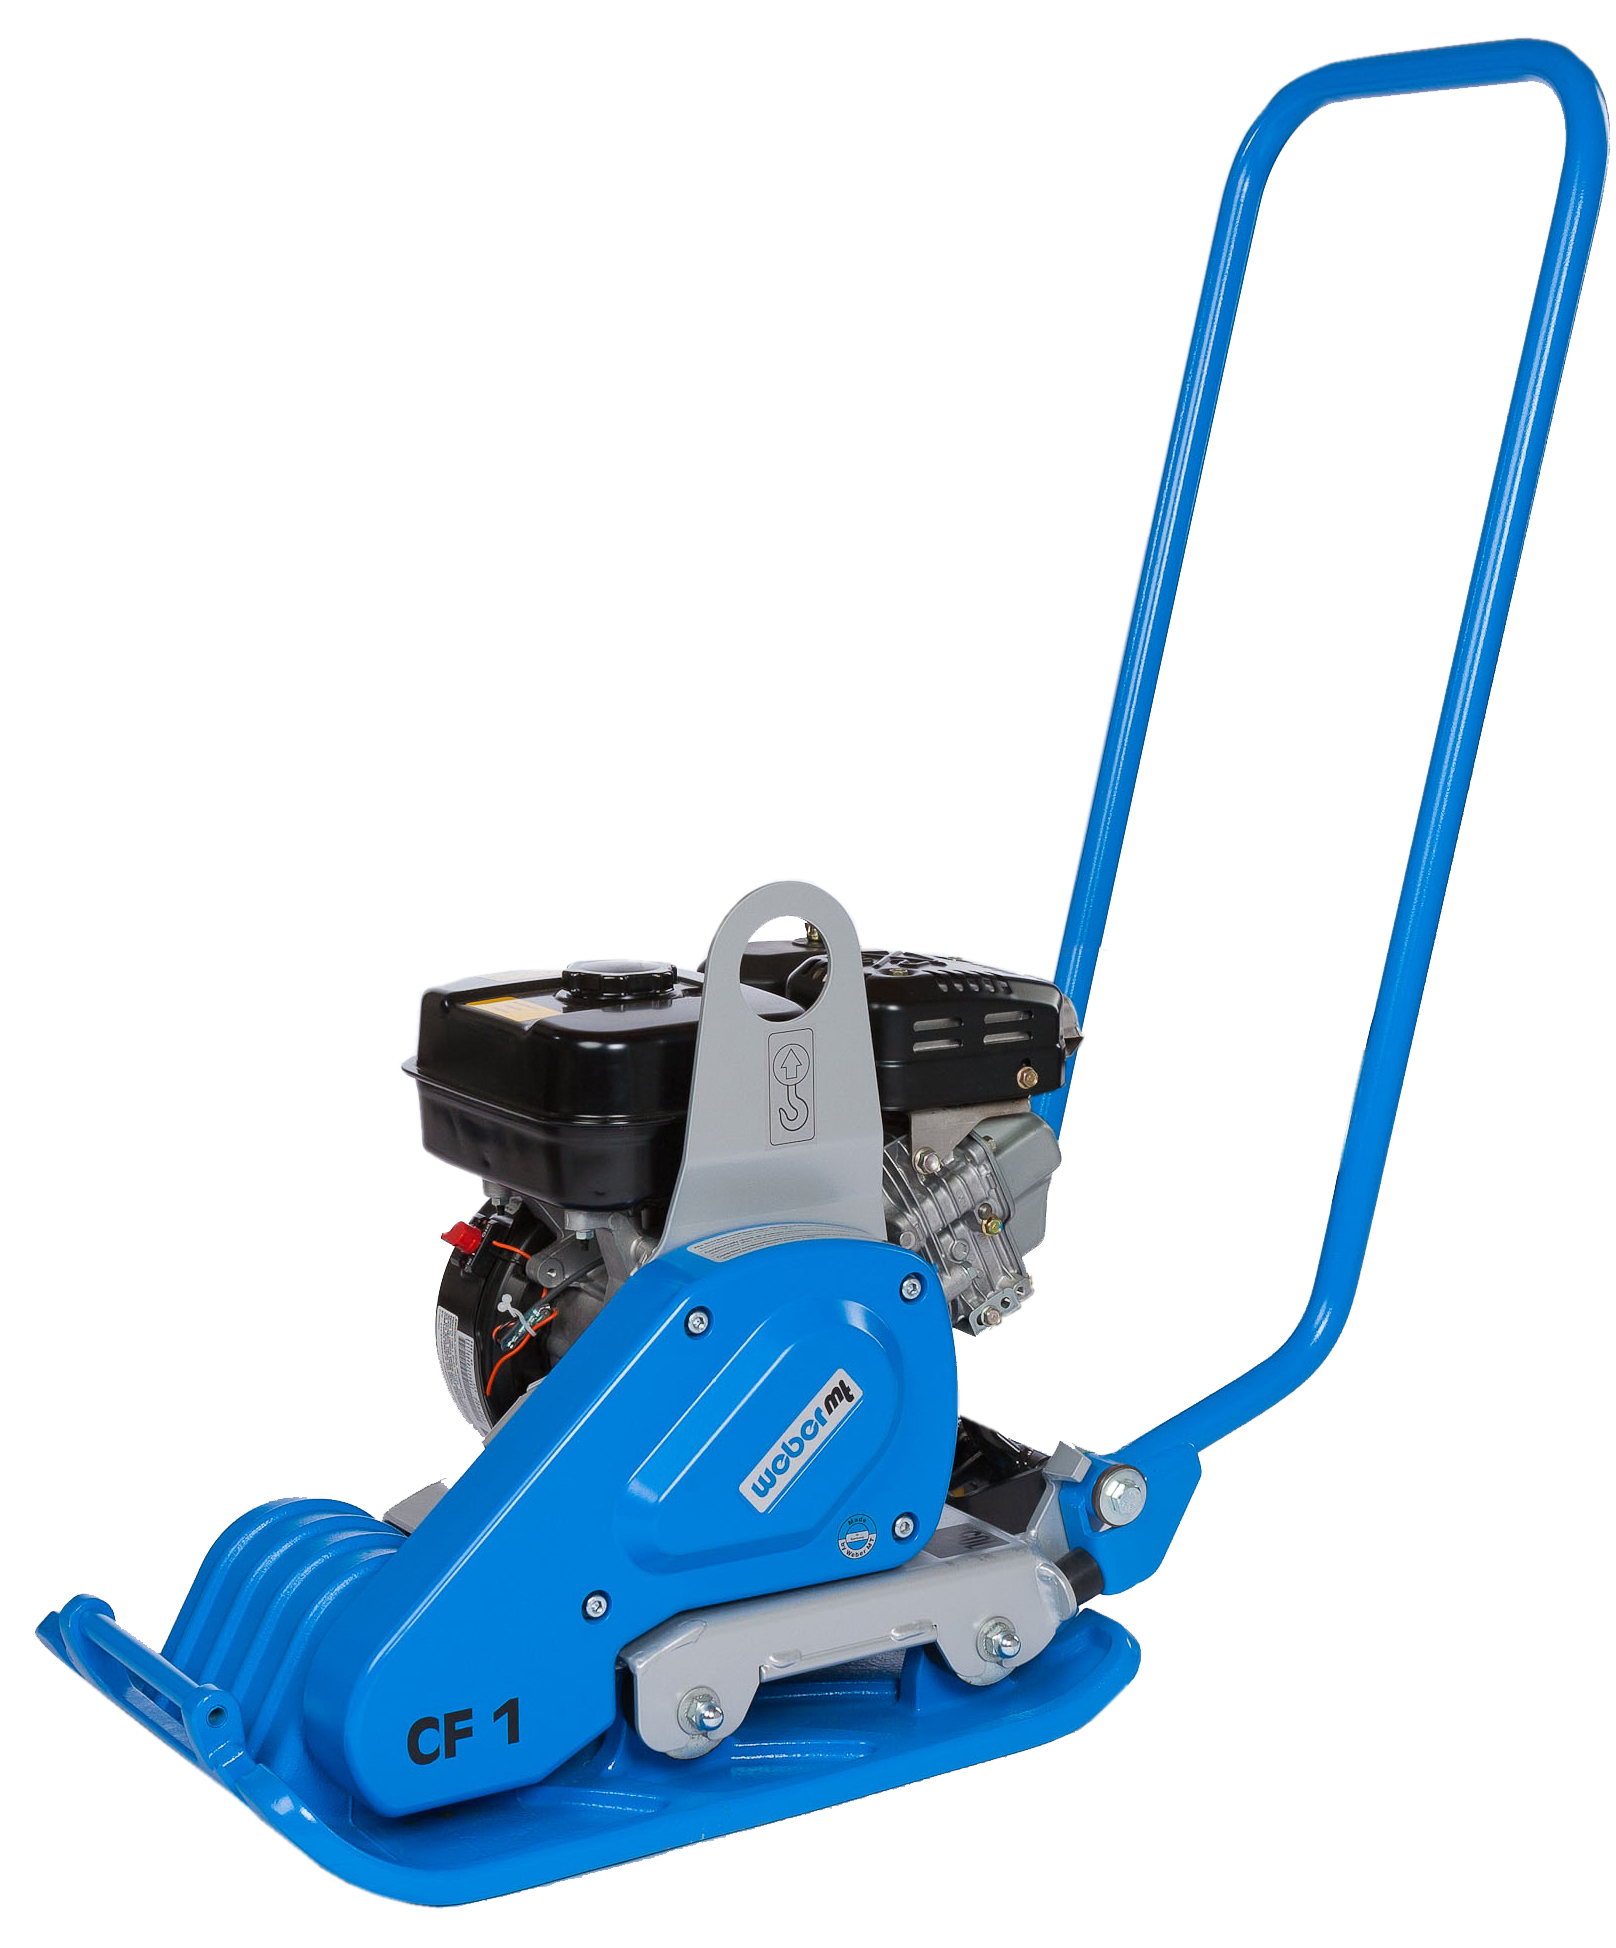 Plate compactor uses best portable air pump for tires